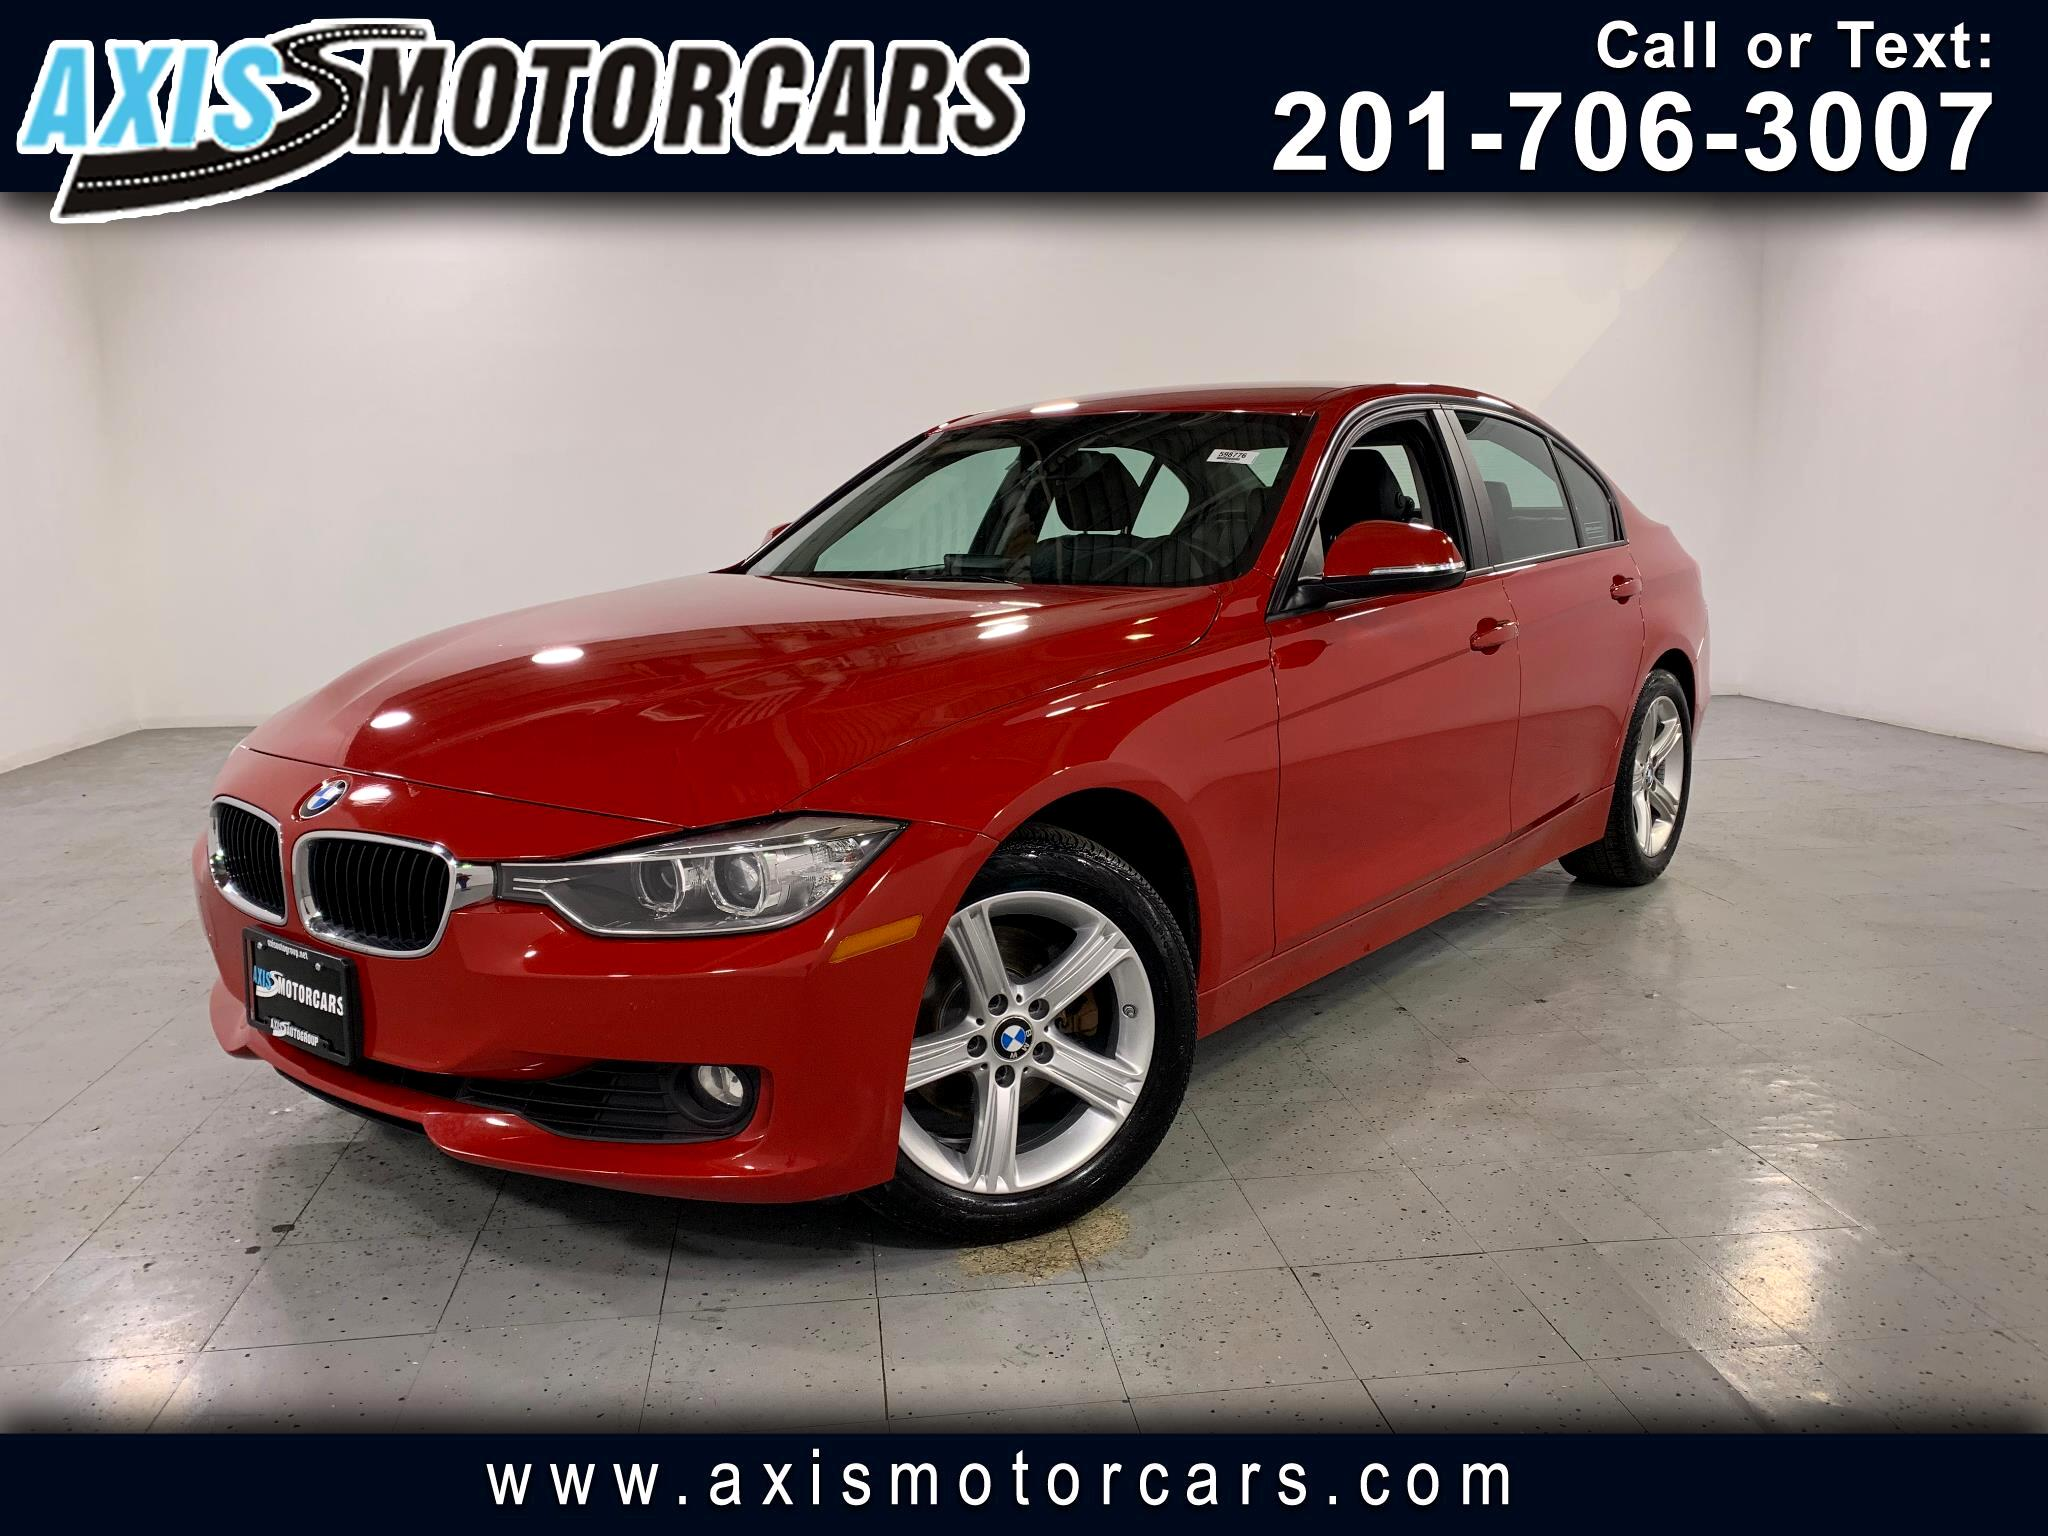 2013 BMW 328i w/Sunroof Navigation Leather